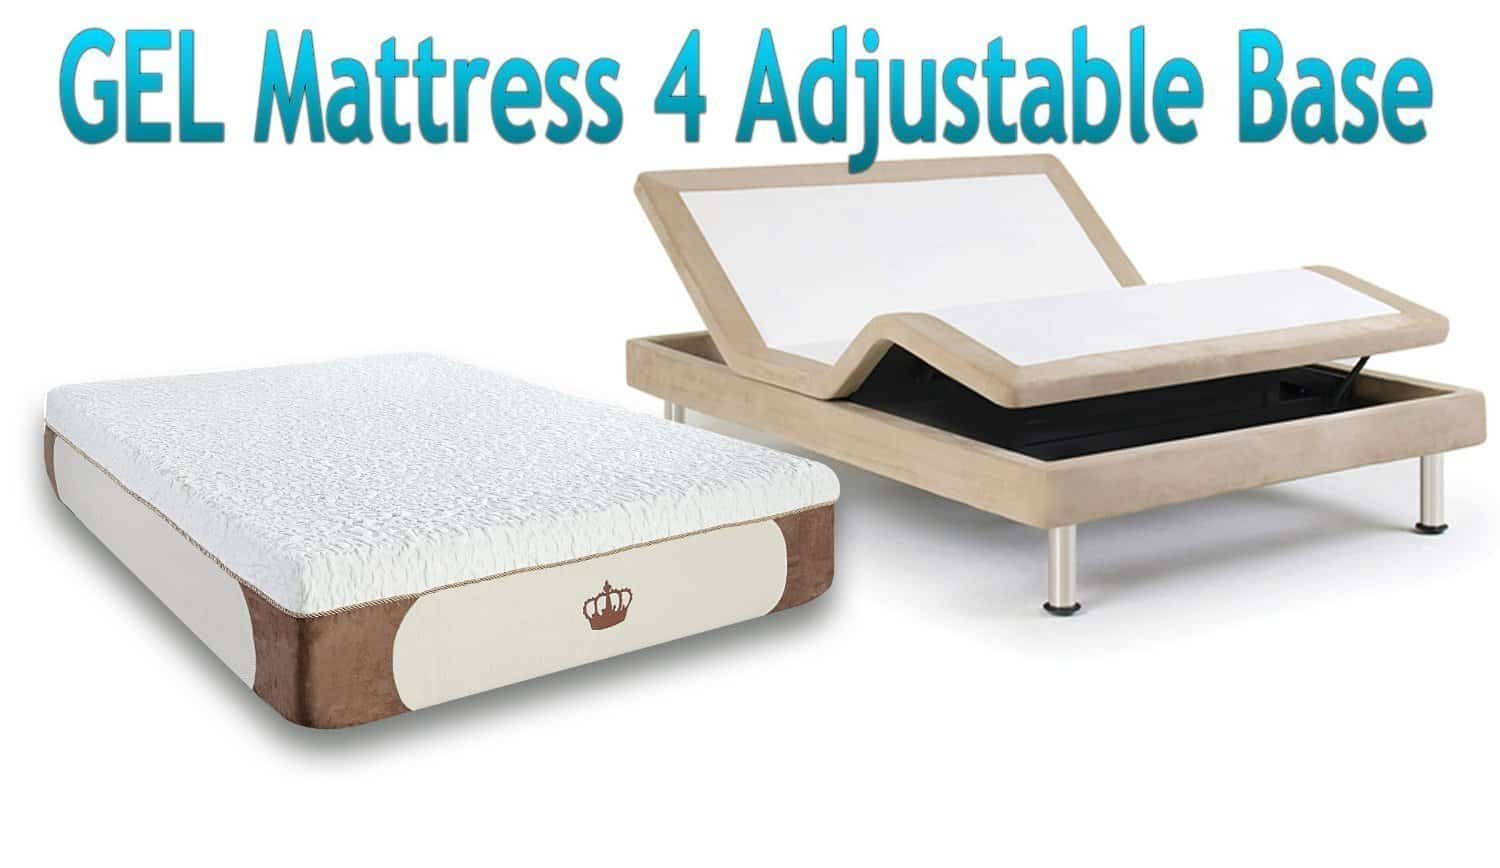 Best Mattress For Adjustable Bed 2019 Sleeperholic